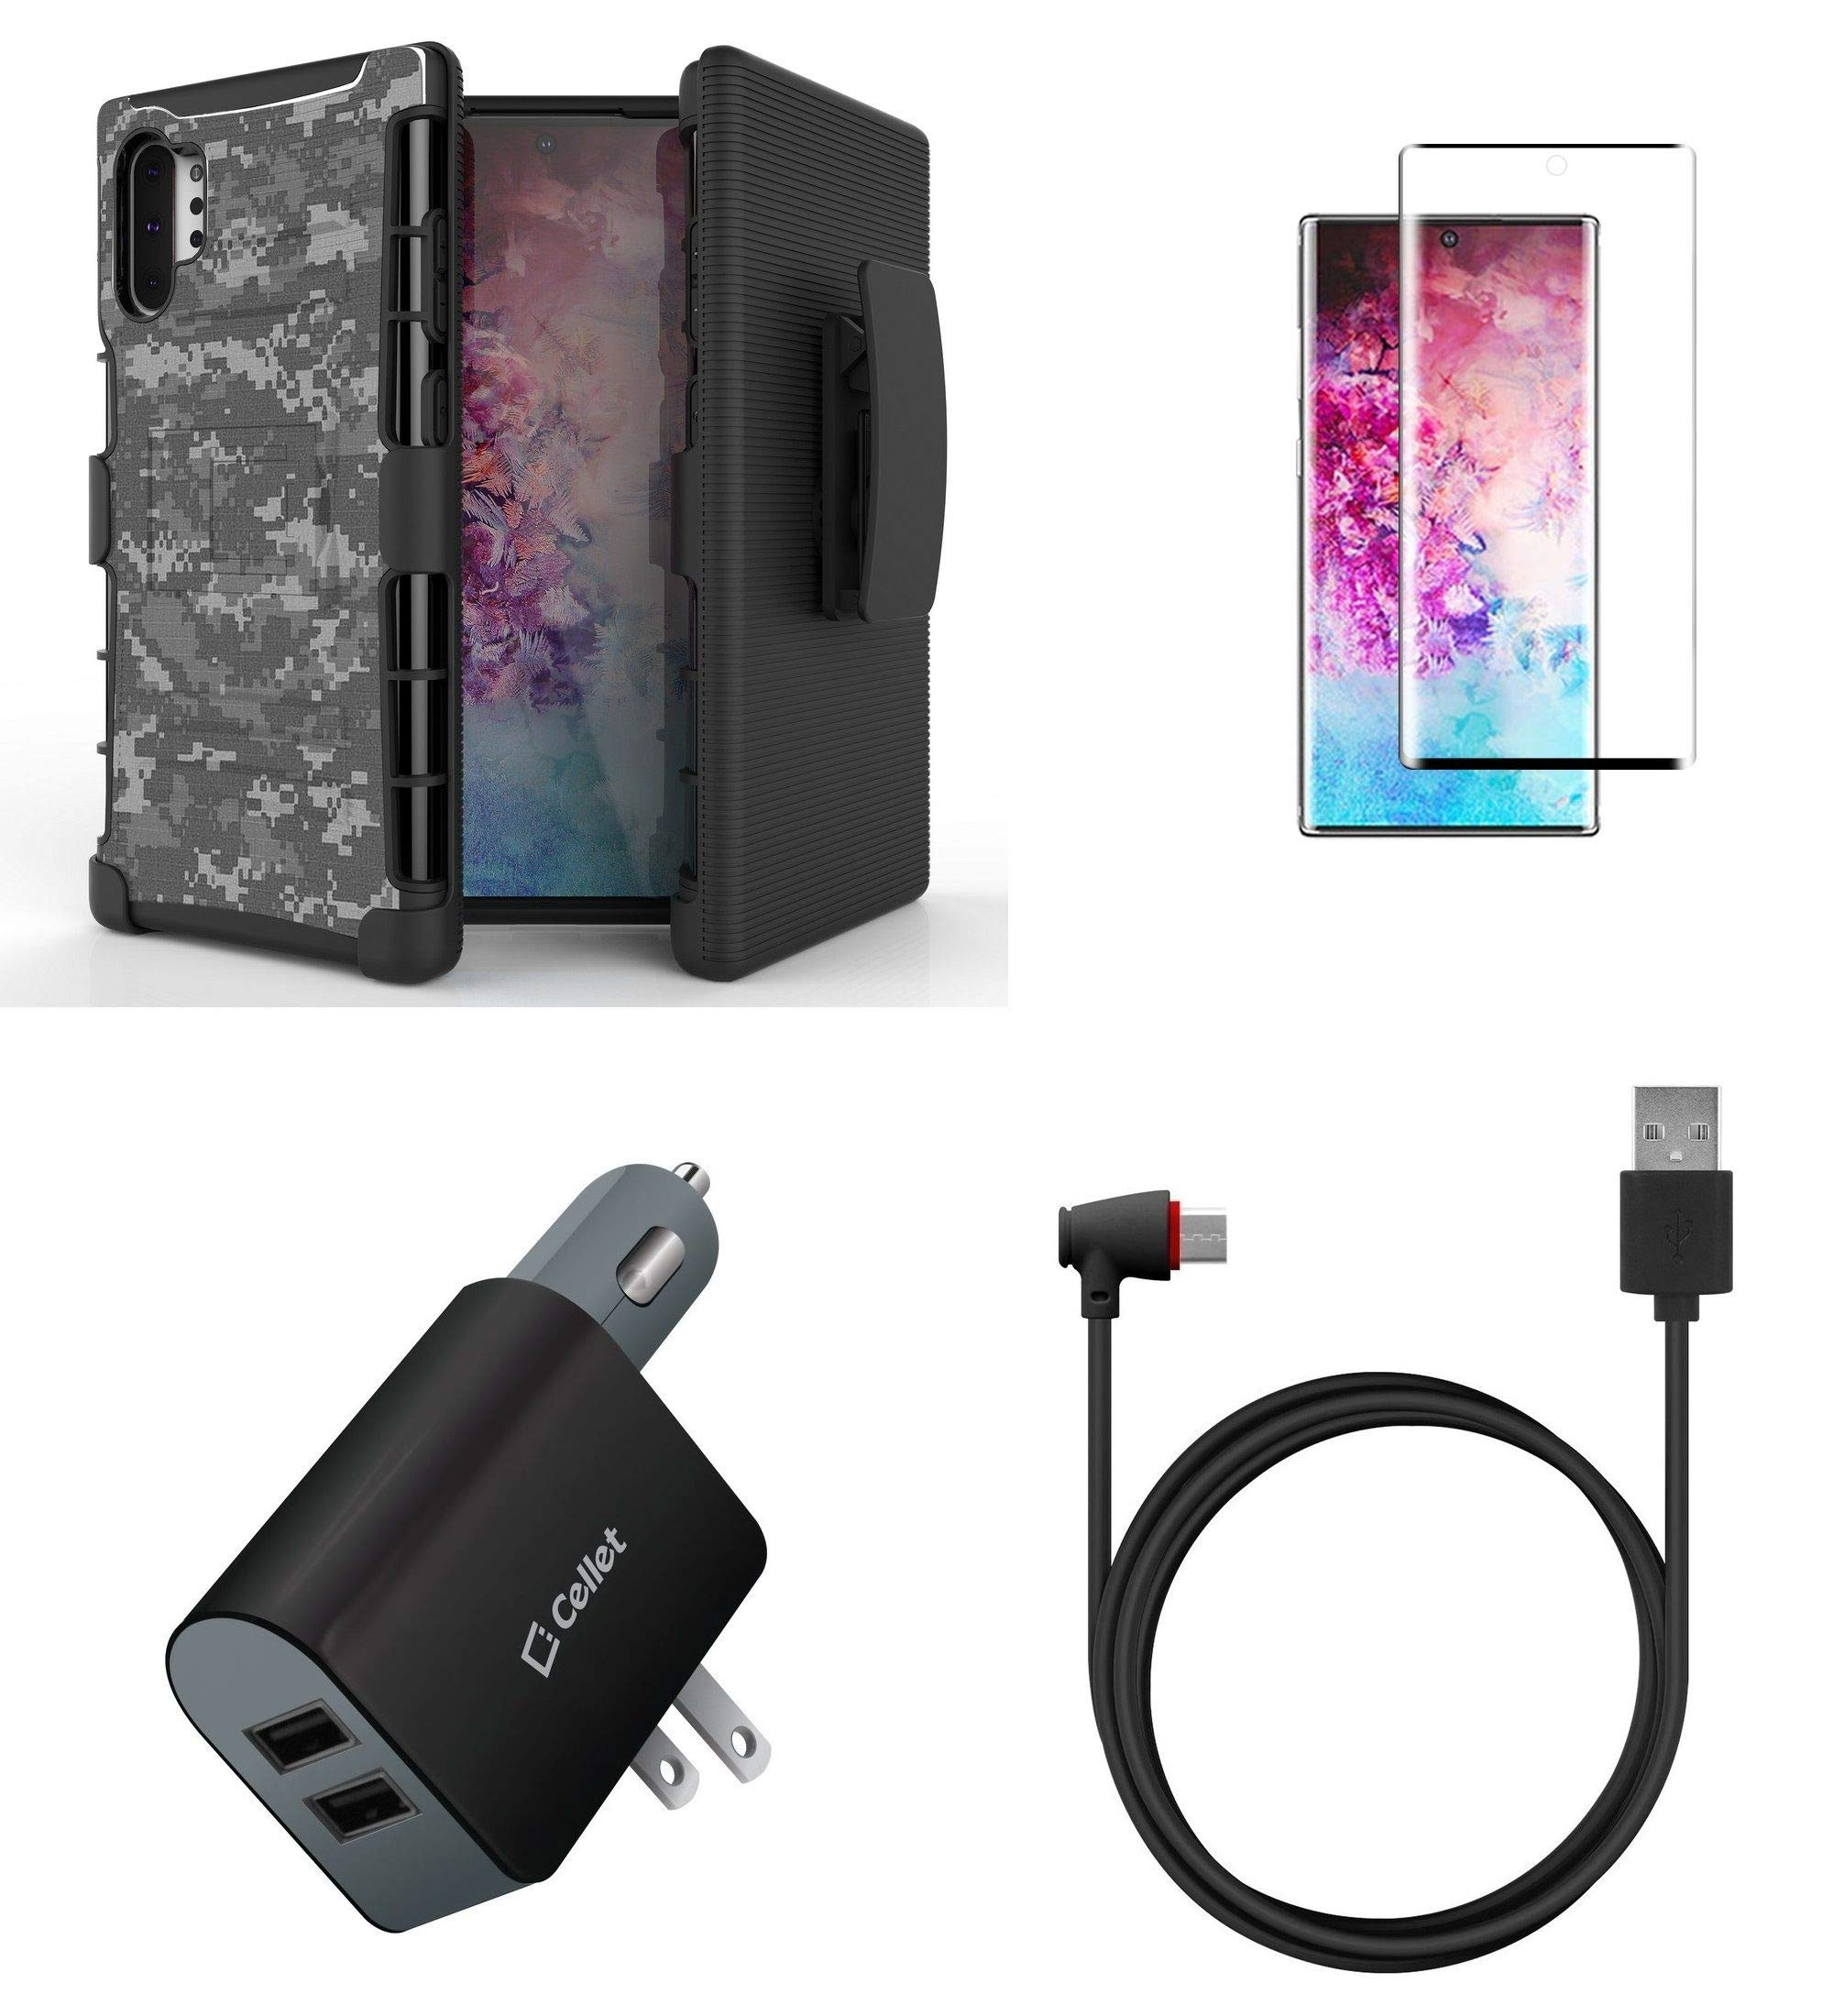 BC Rugged Series Bundle Compatible with Samsung Galaxy Note 10+ Plus - Heavy Duty Armor Holster Case (Digital Pixel Camo), Glass Screen Protector, UL Certified 10W Car/Wall Charger, Angled USB-C Cable by Bemz Depot